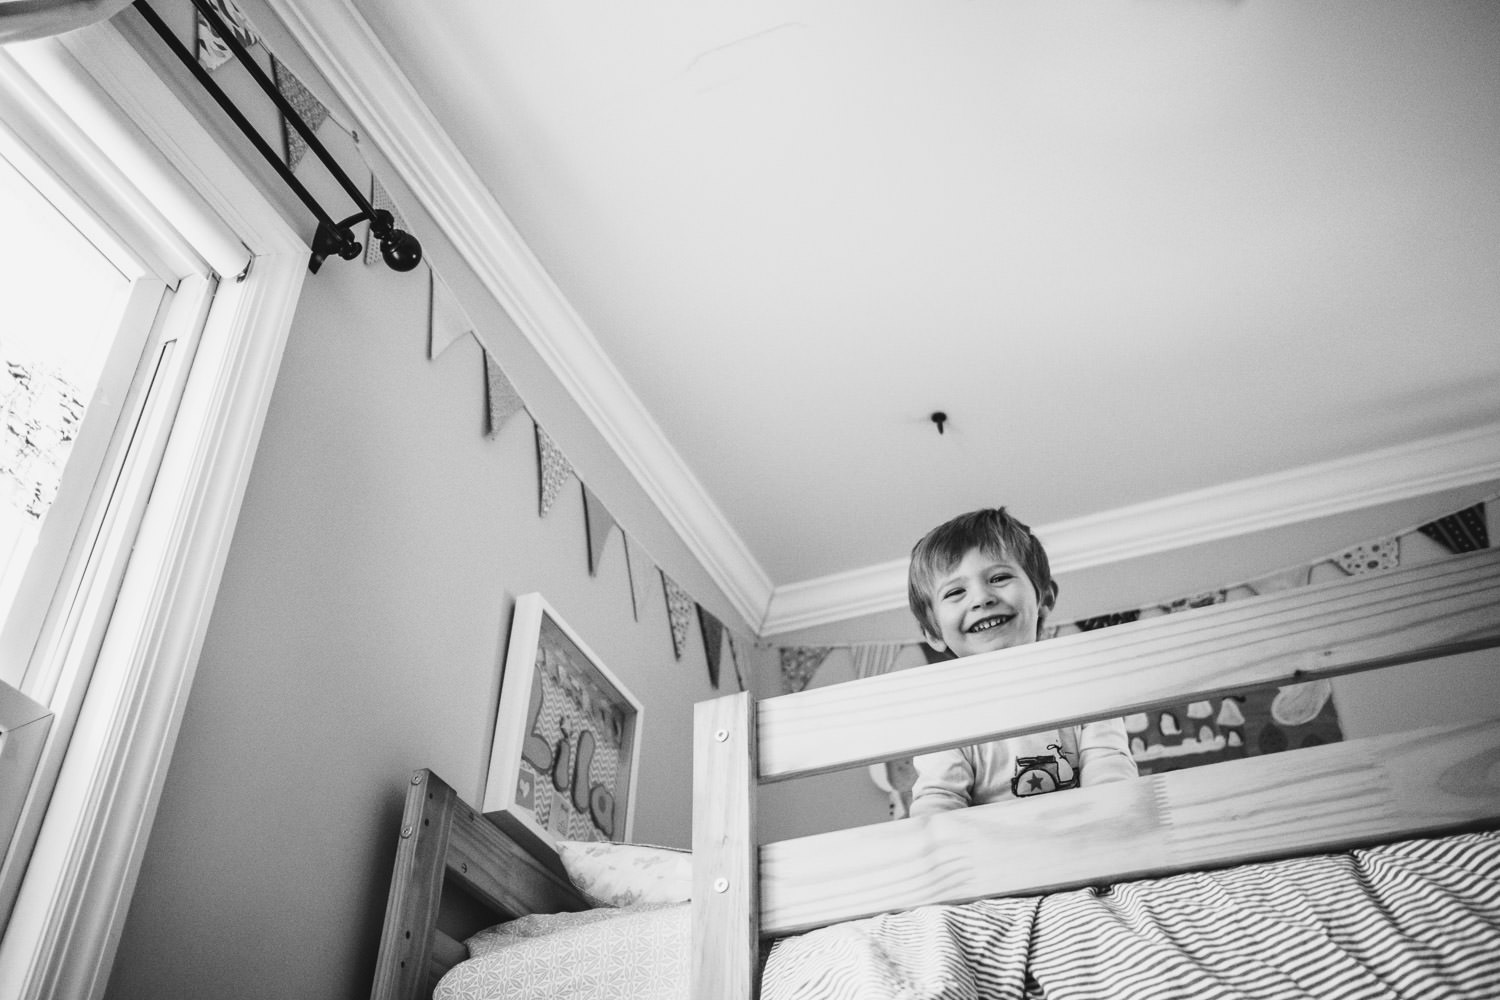 A little boy peers down from the top bunk of his bed.